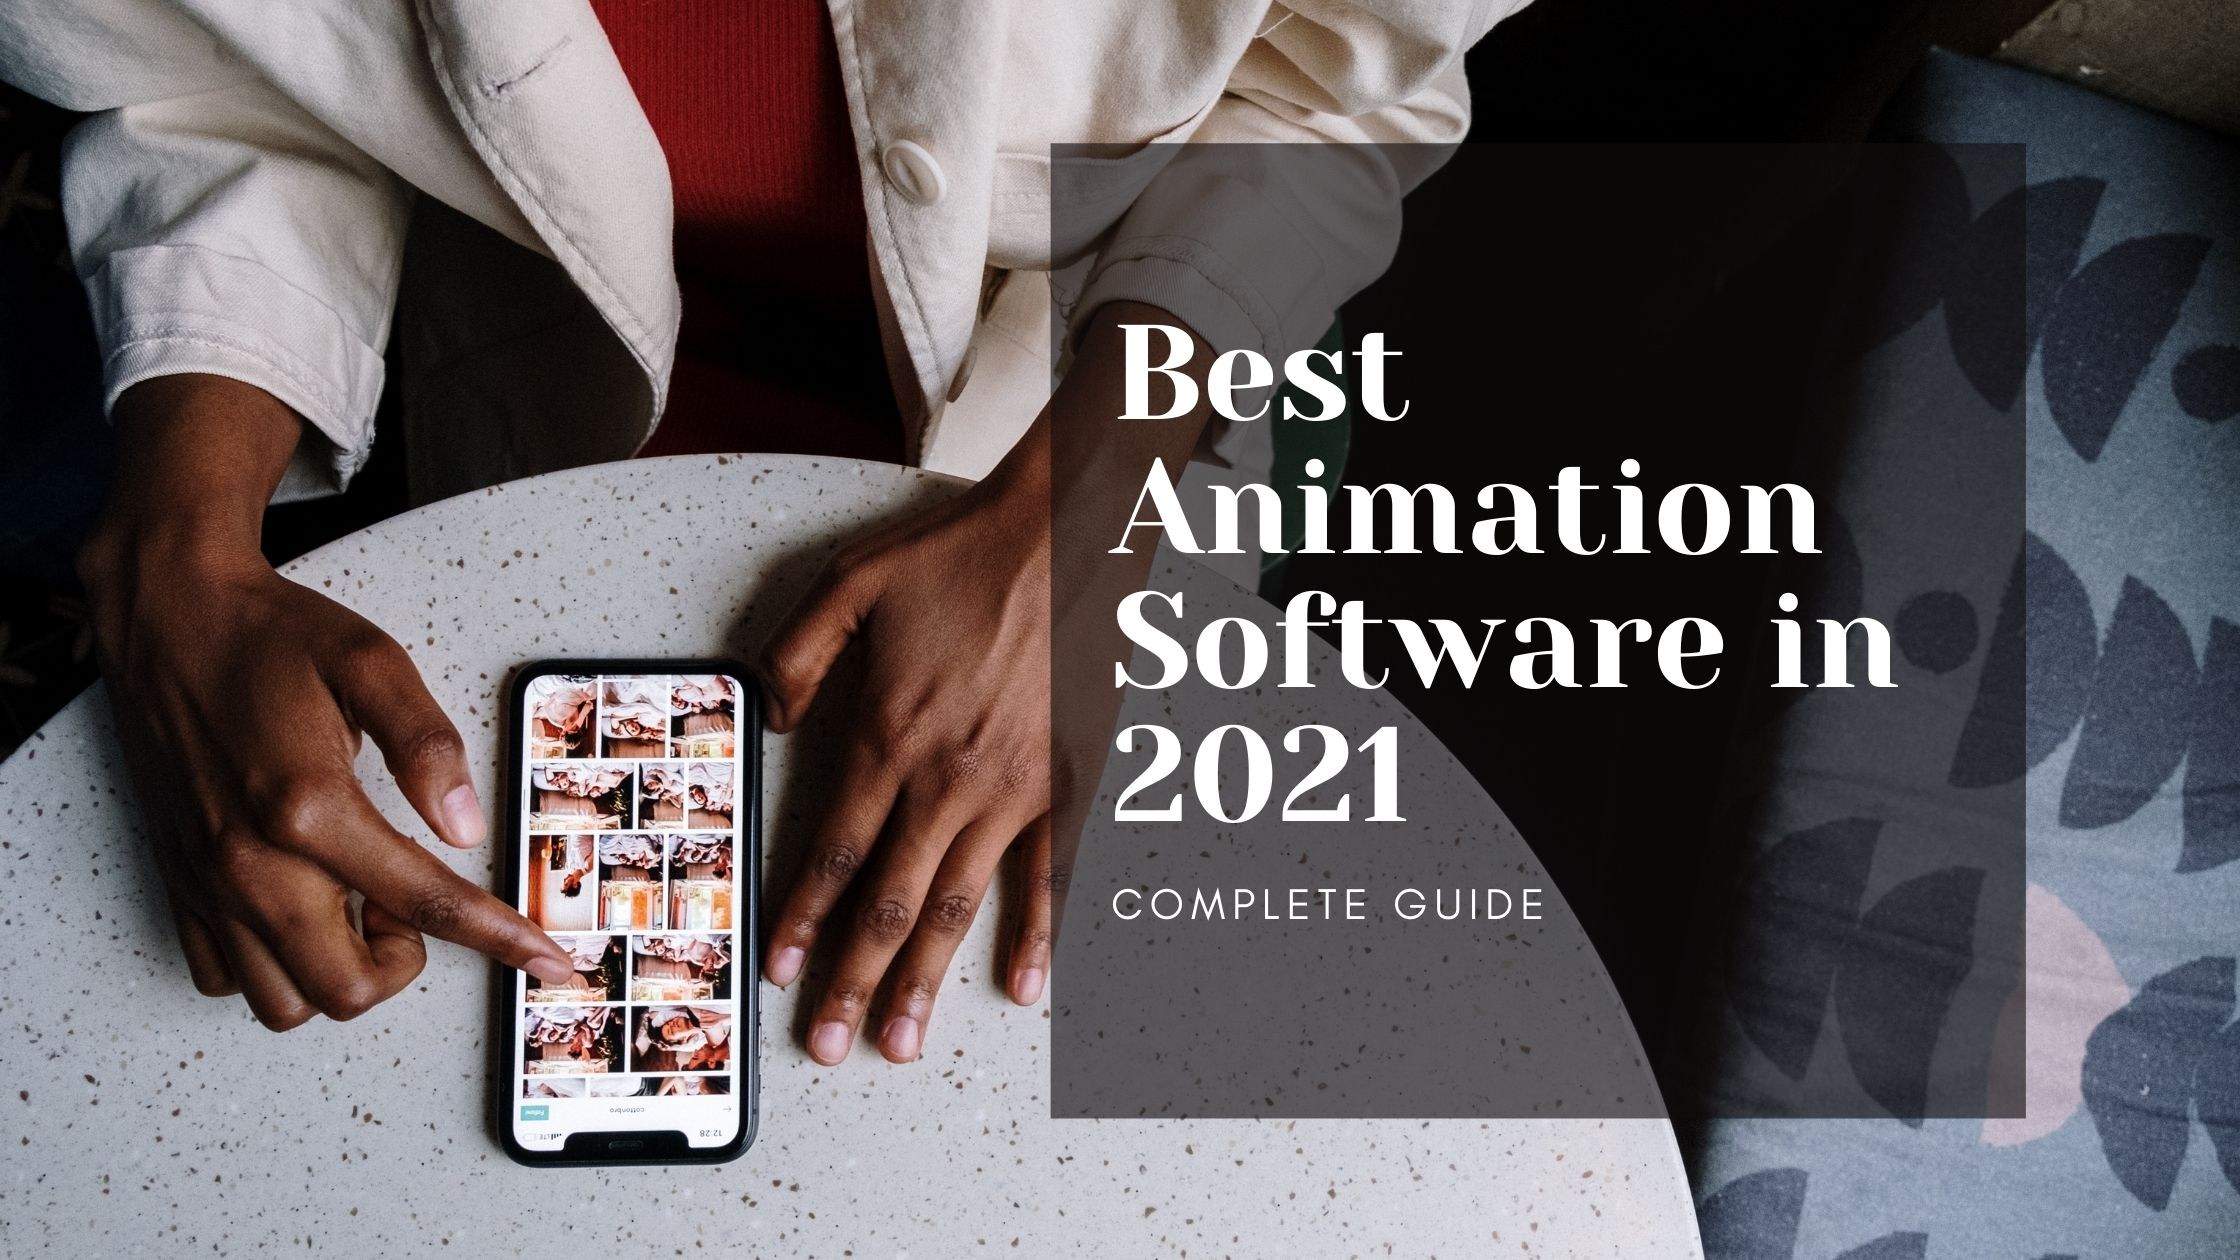 Best Animation Software in 2021